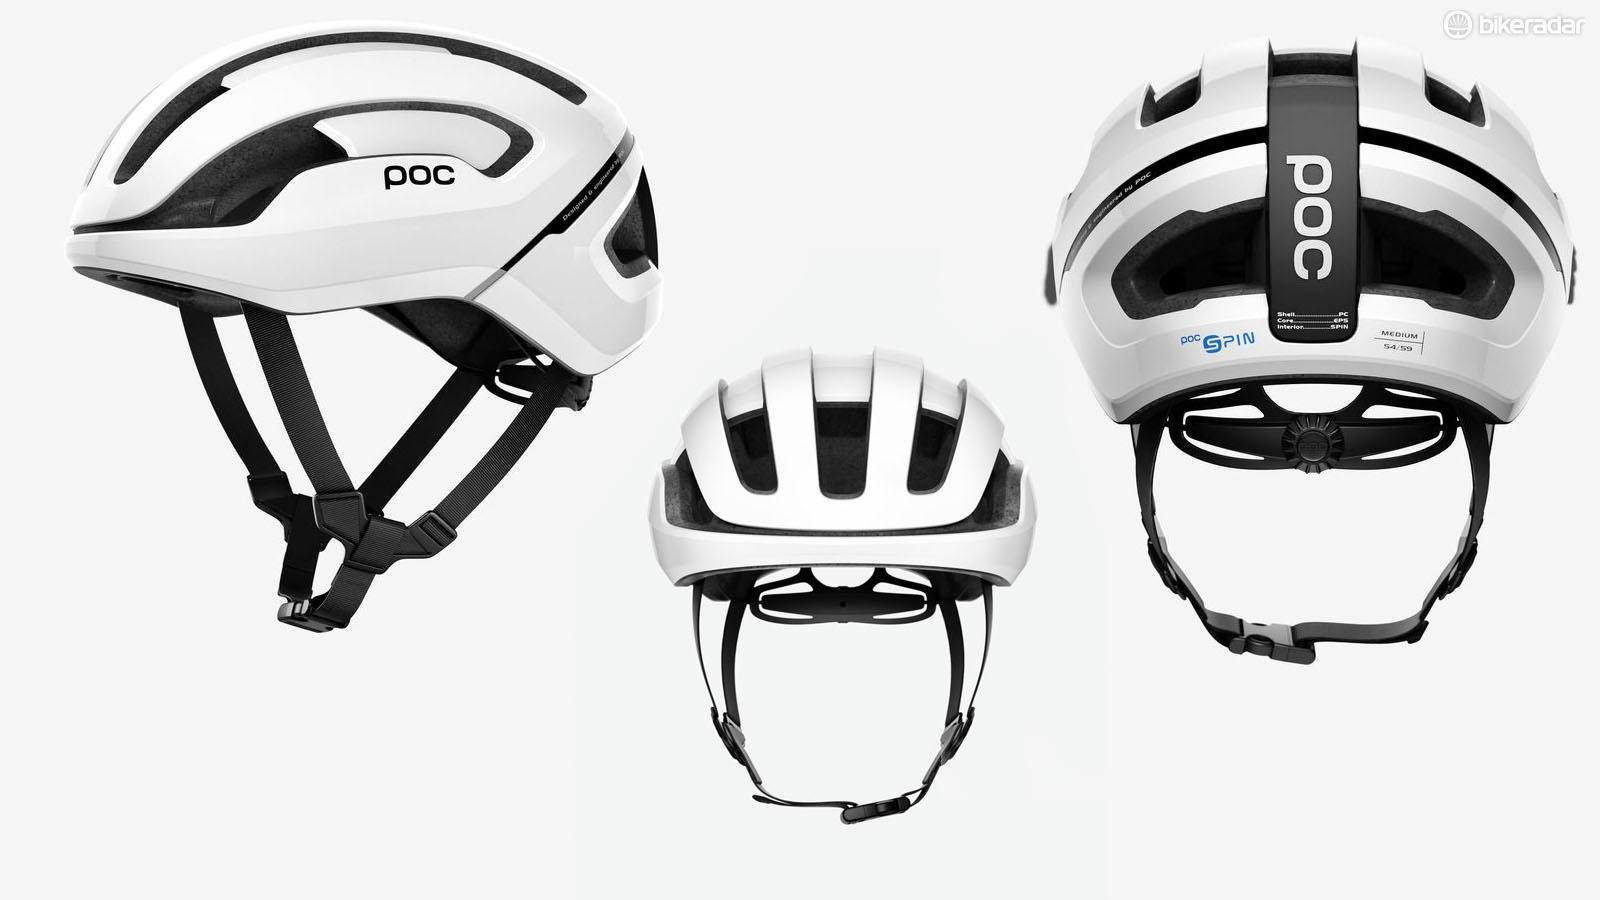 A new addition is the OMNE road lid